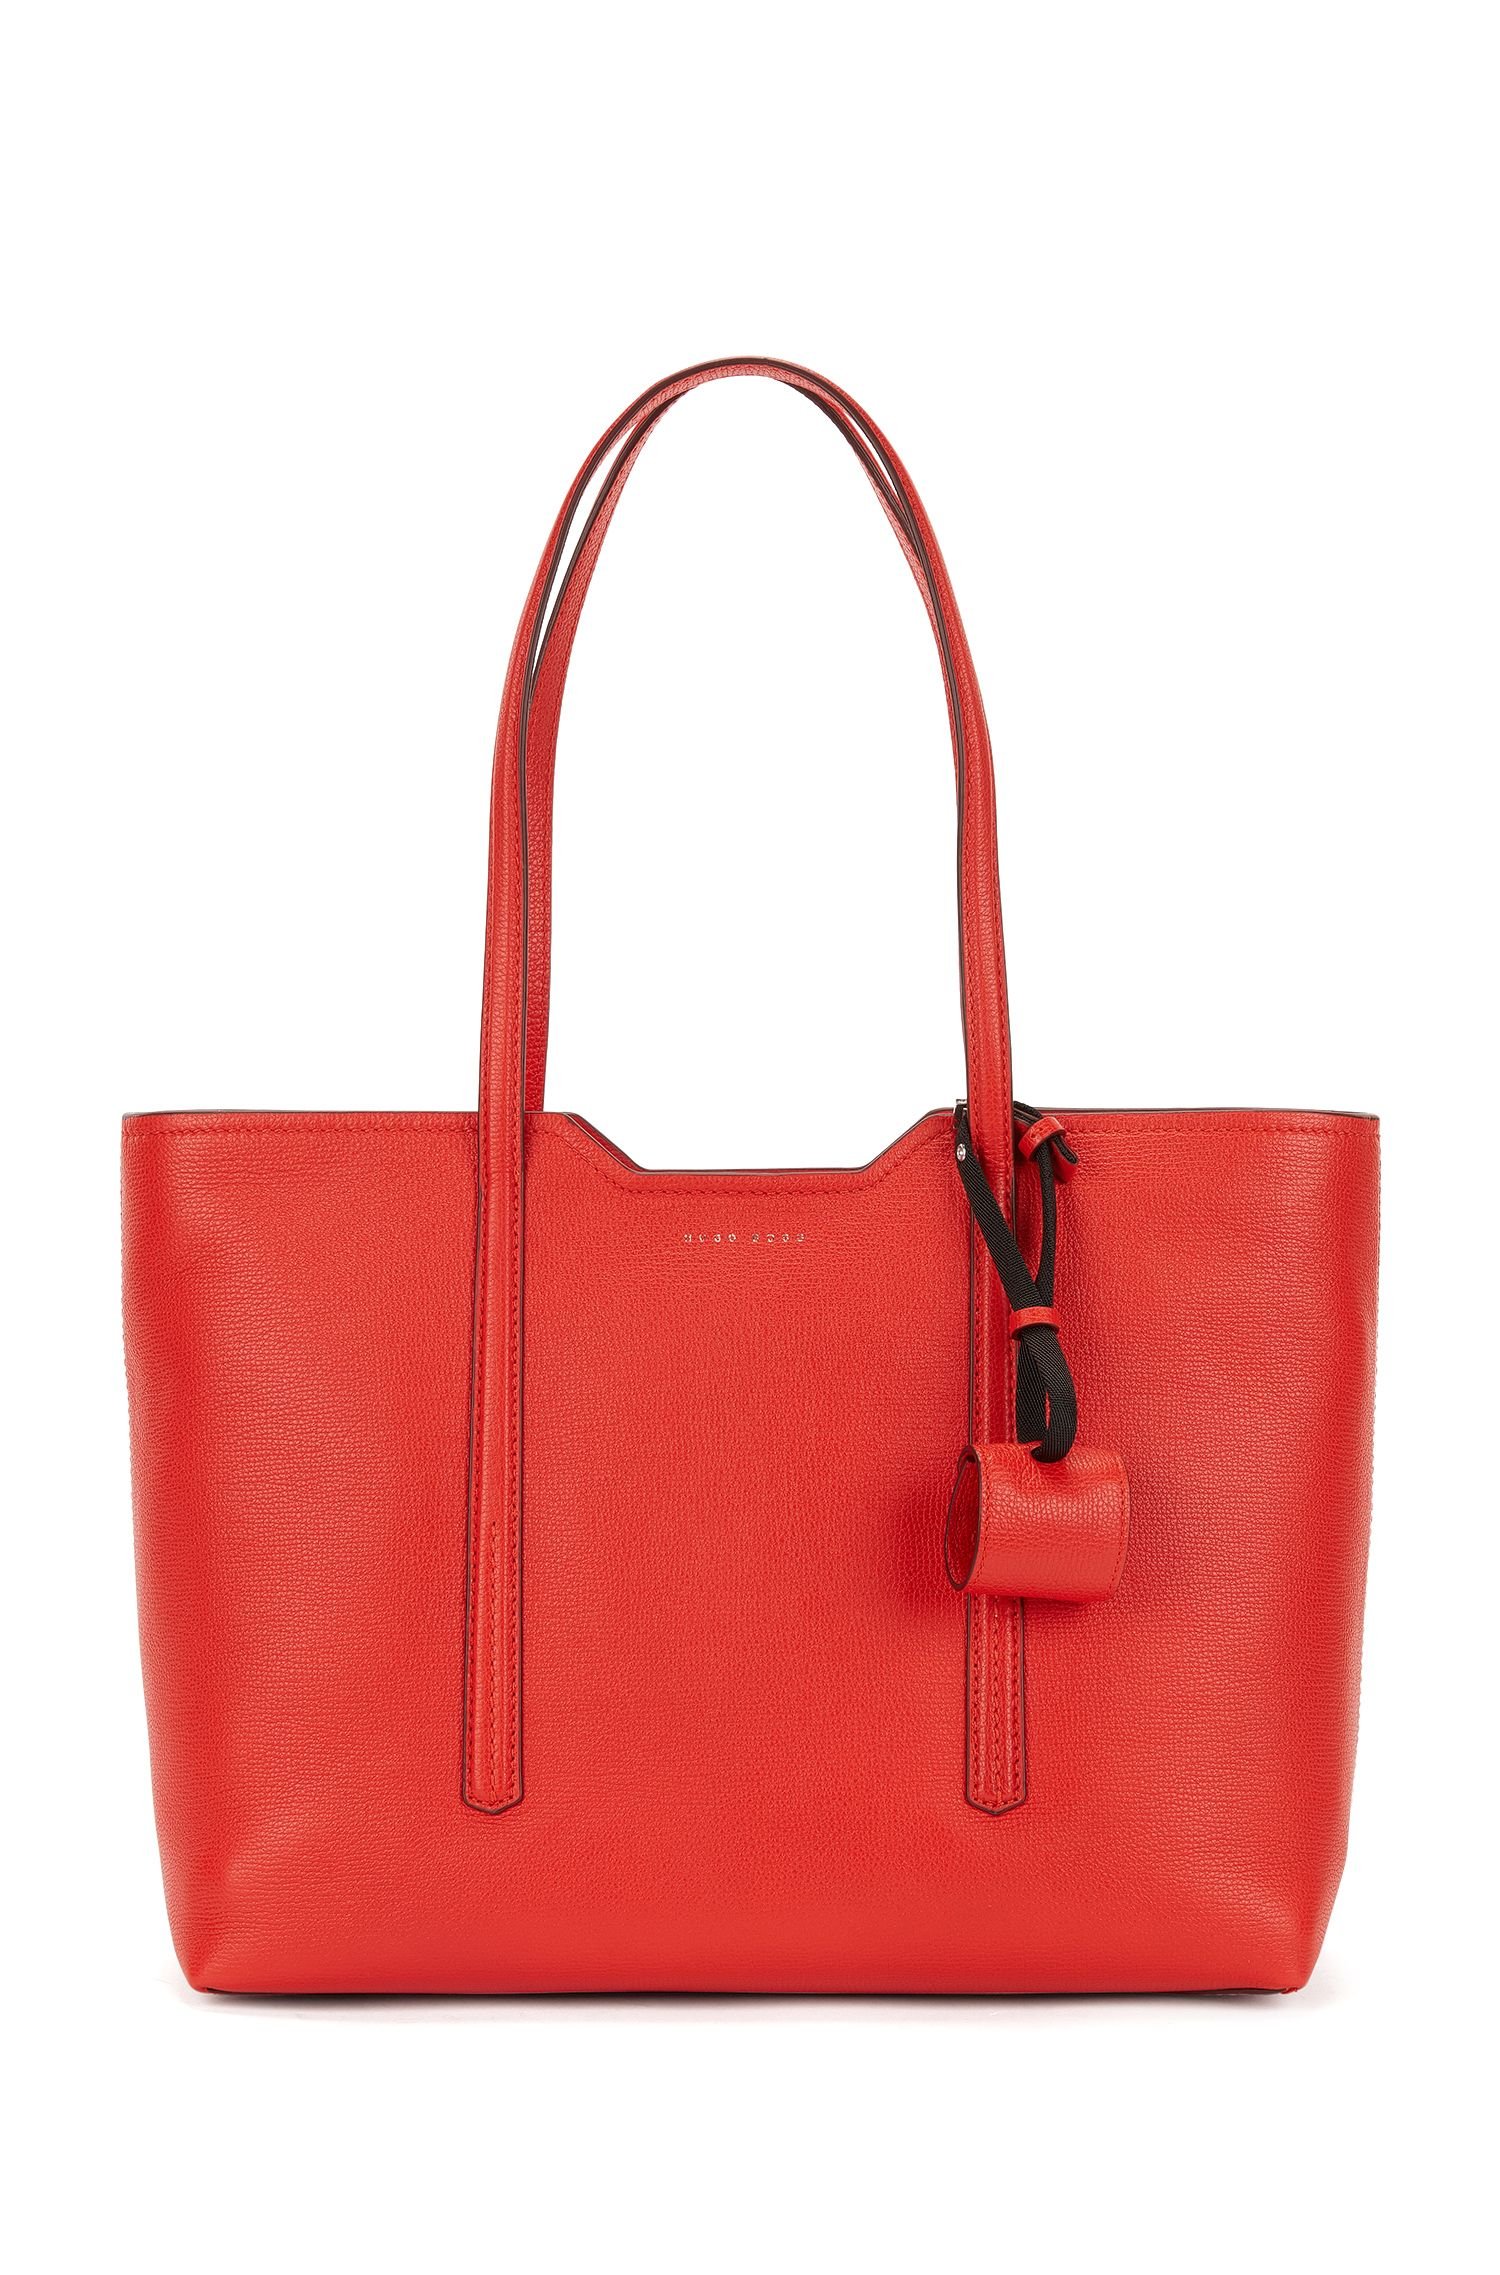 Shopper bag in Italian leather